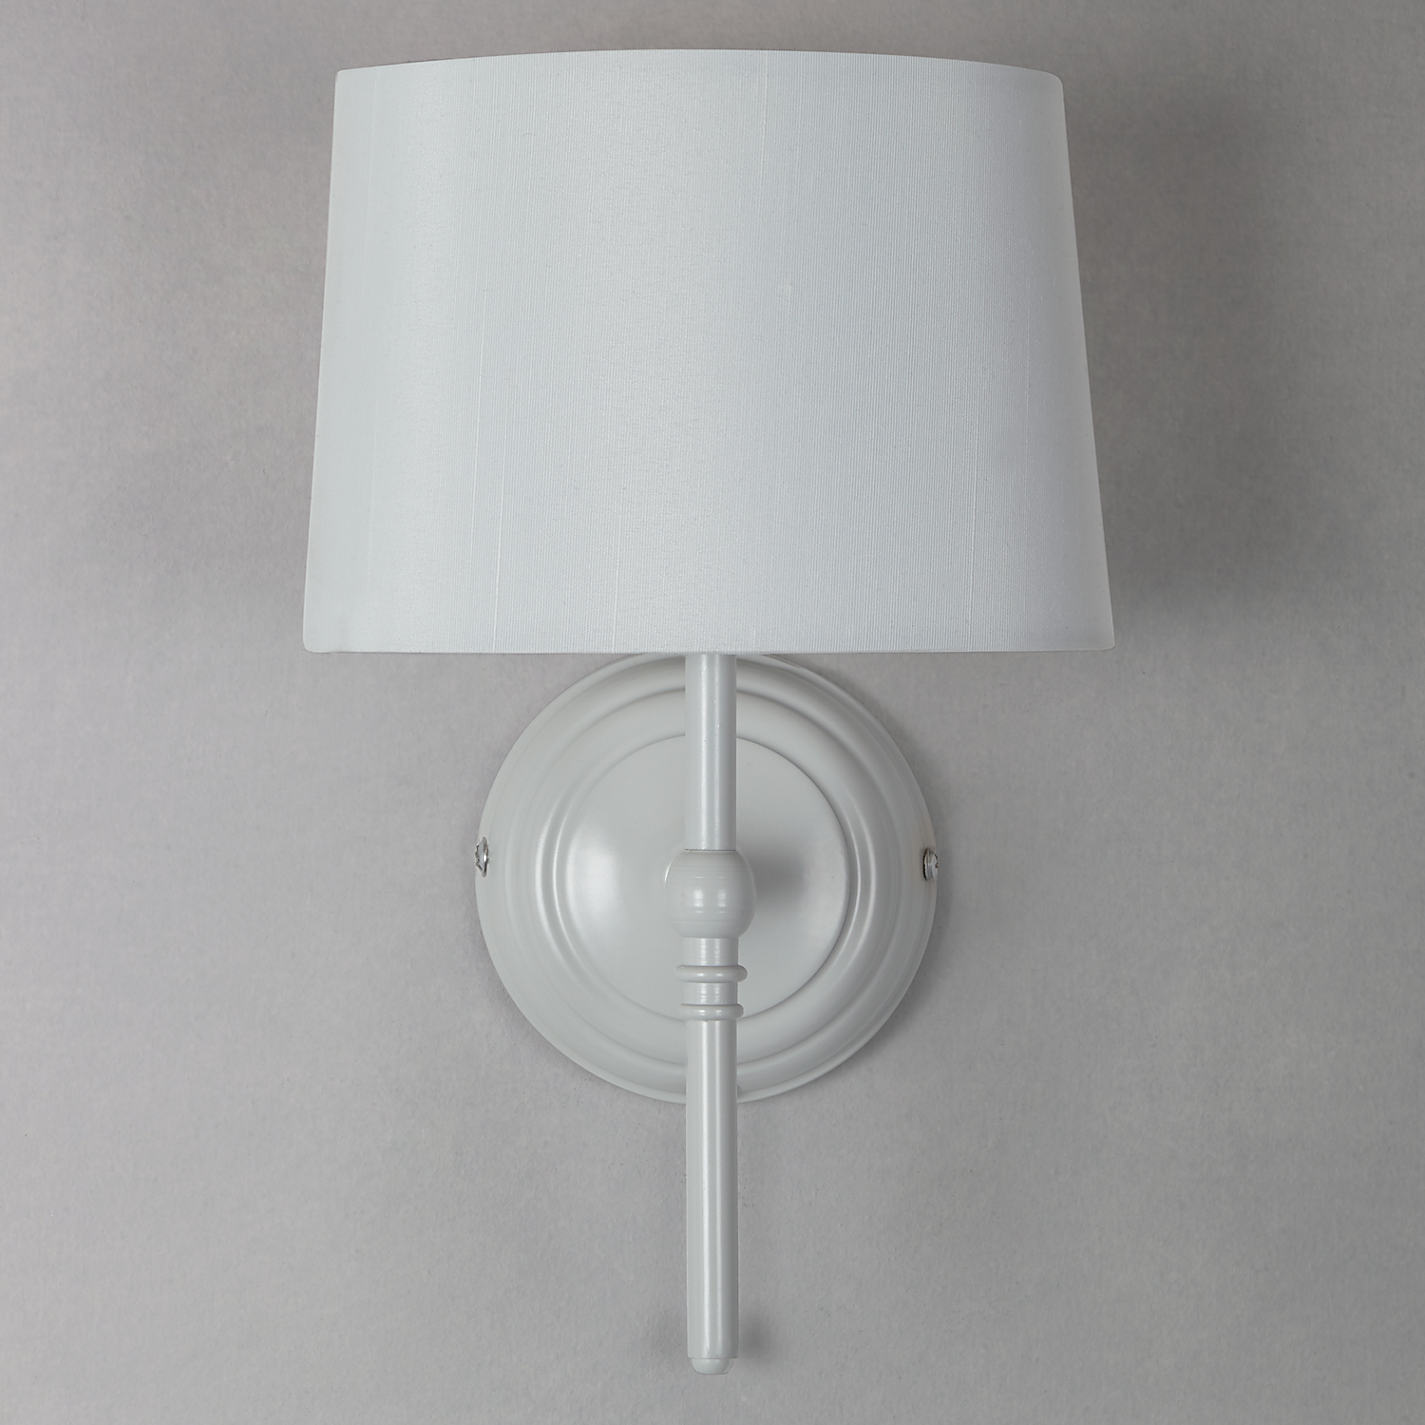 Buy john lewis isabel wall light 1 light grey john lewis buy john lewis isabel wall light 1 light grey online at johnlewis geotapseo Image collections